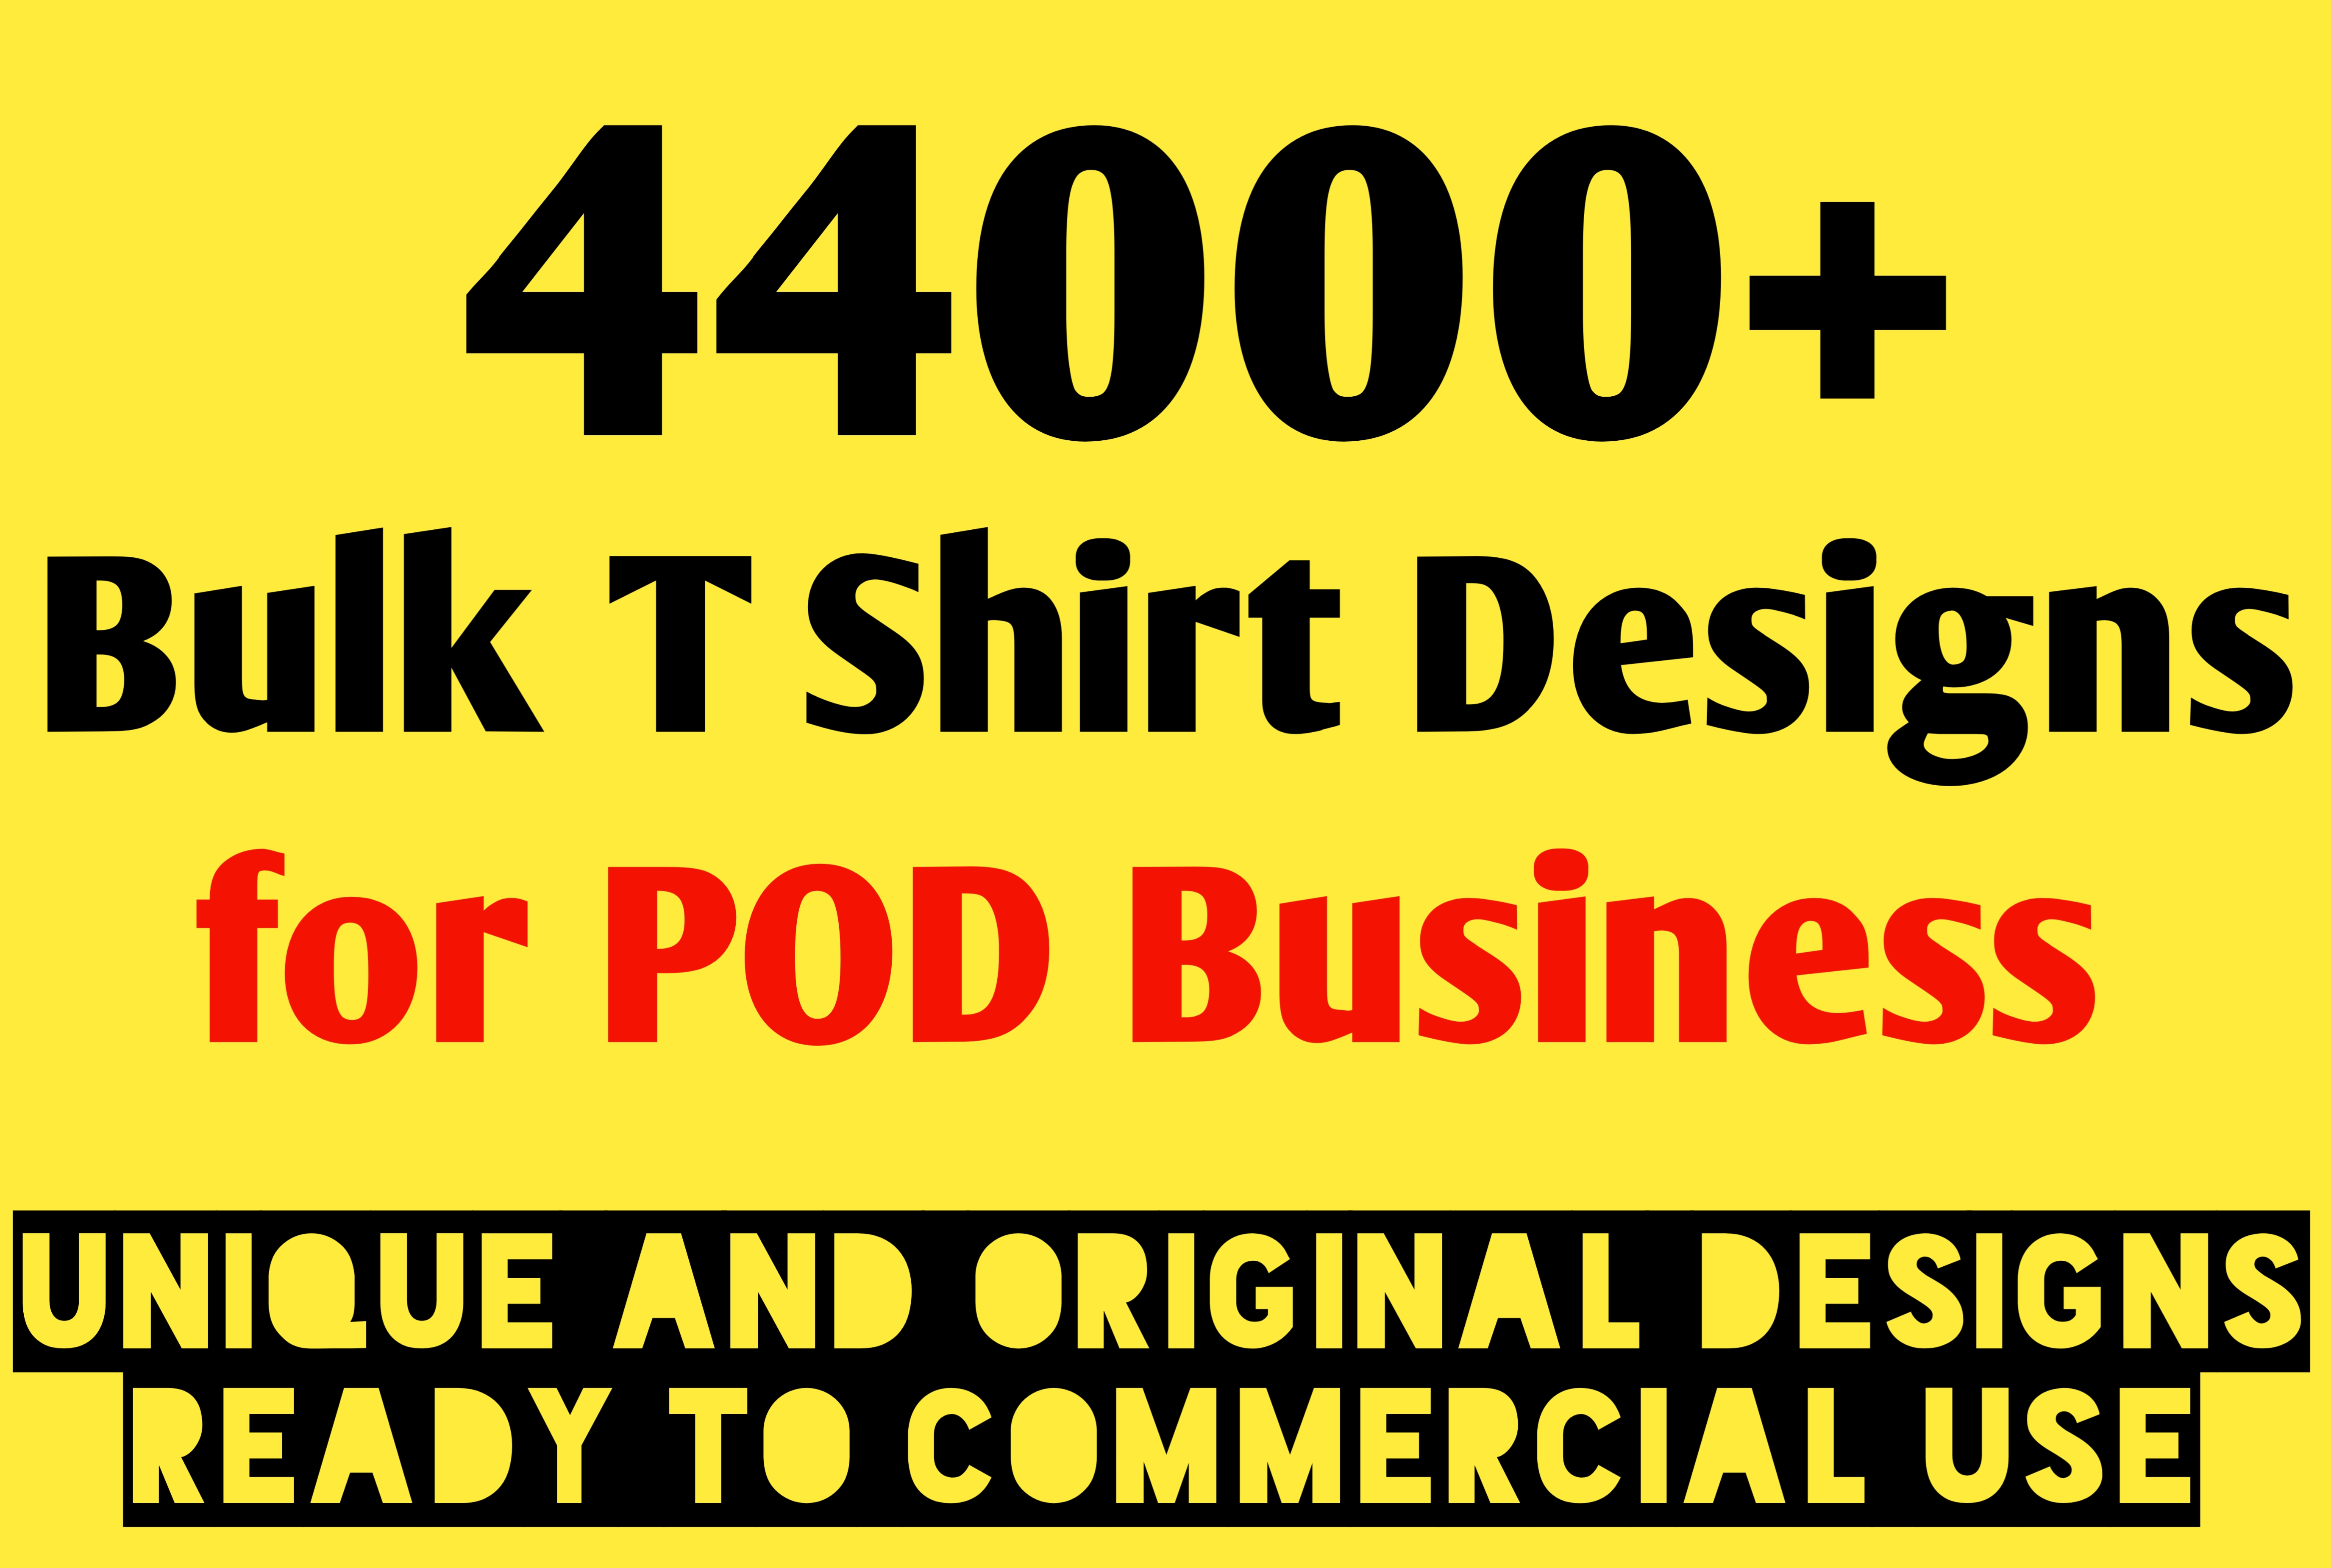 I will give 44000 bulk t shirt designs unique for pod business